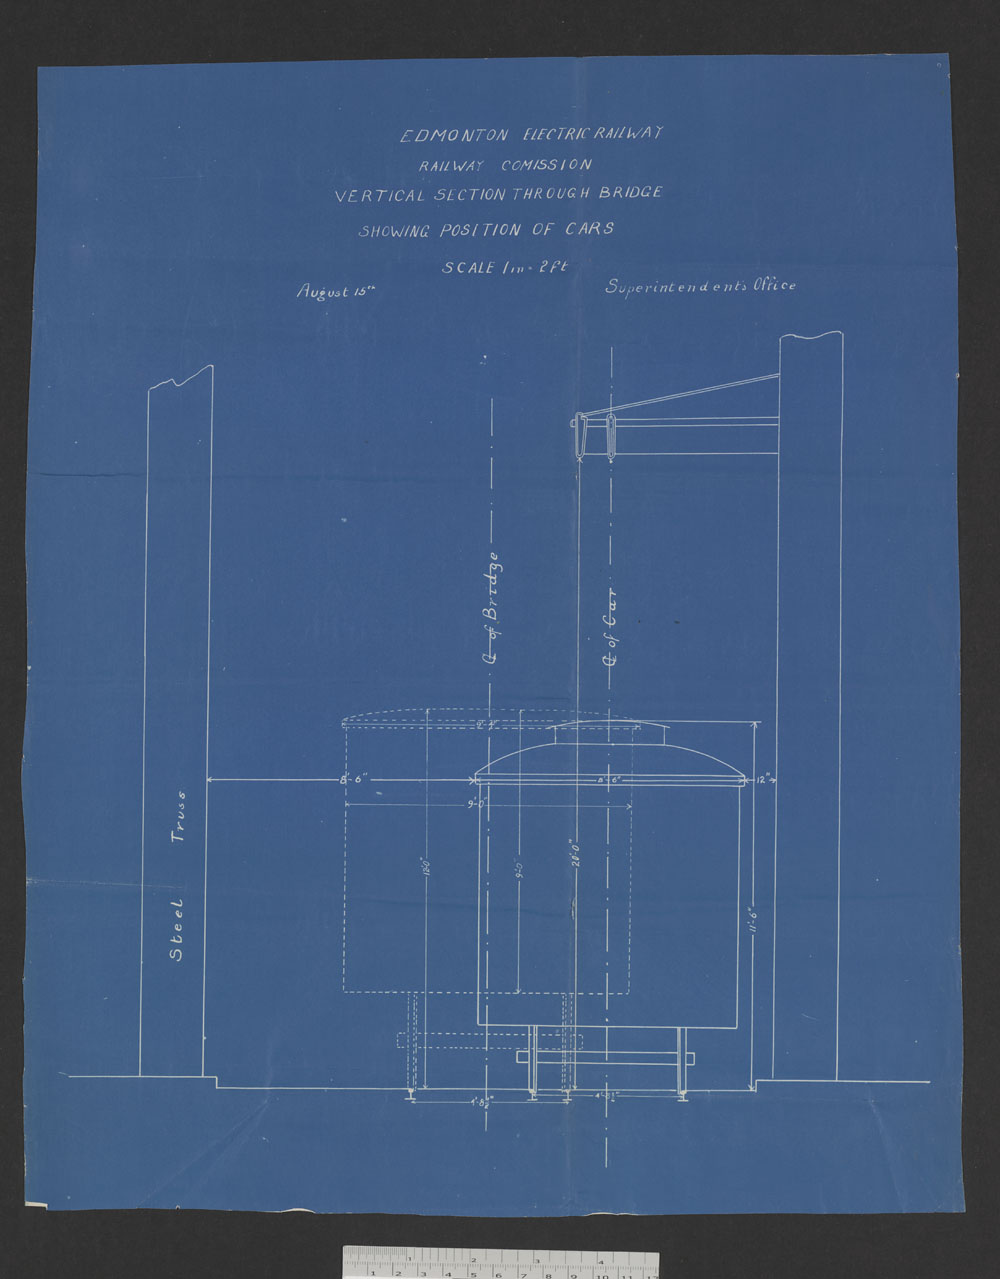 Edmonton Electric Railway - Railway Commission - Vertical section through bridge showing position of cars. (item 11)